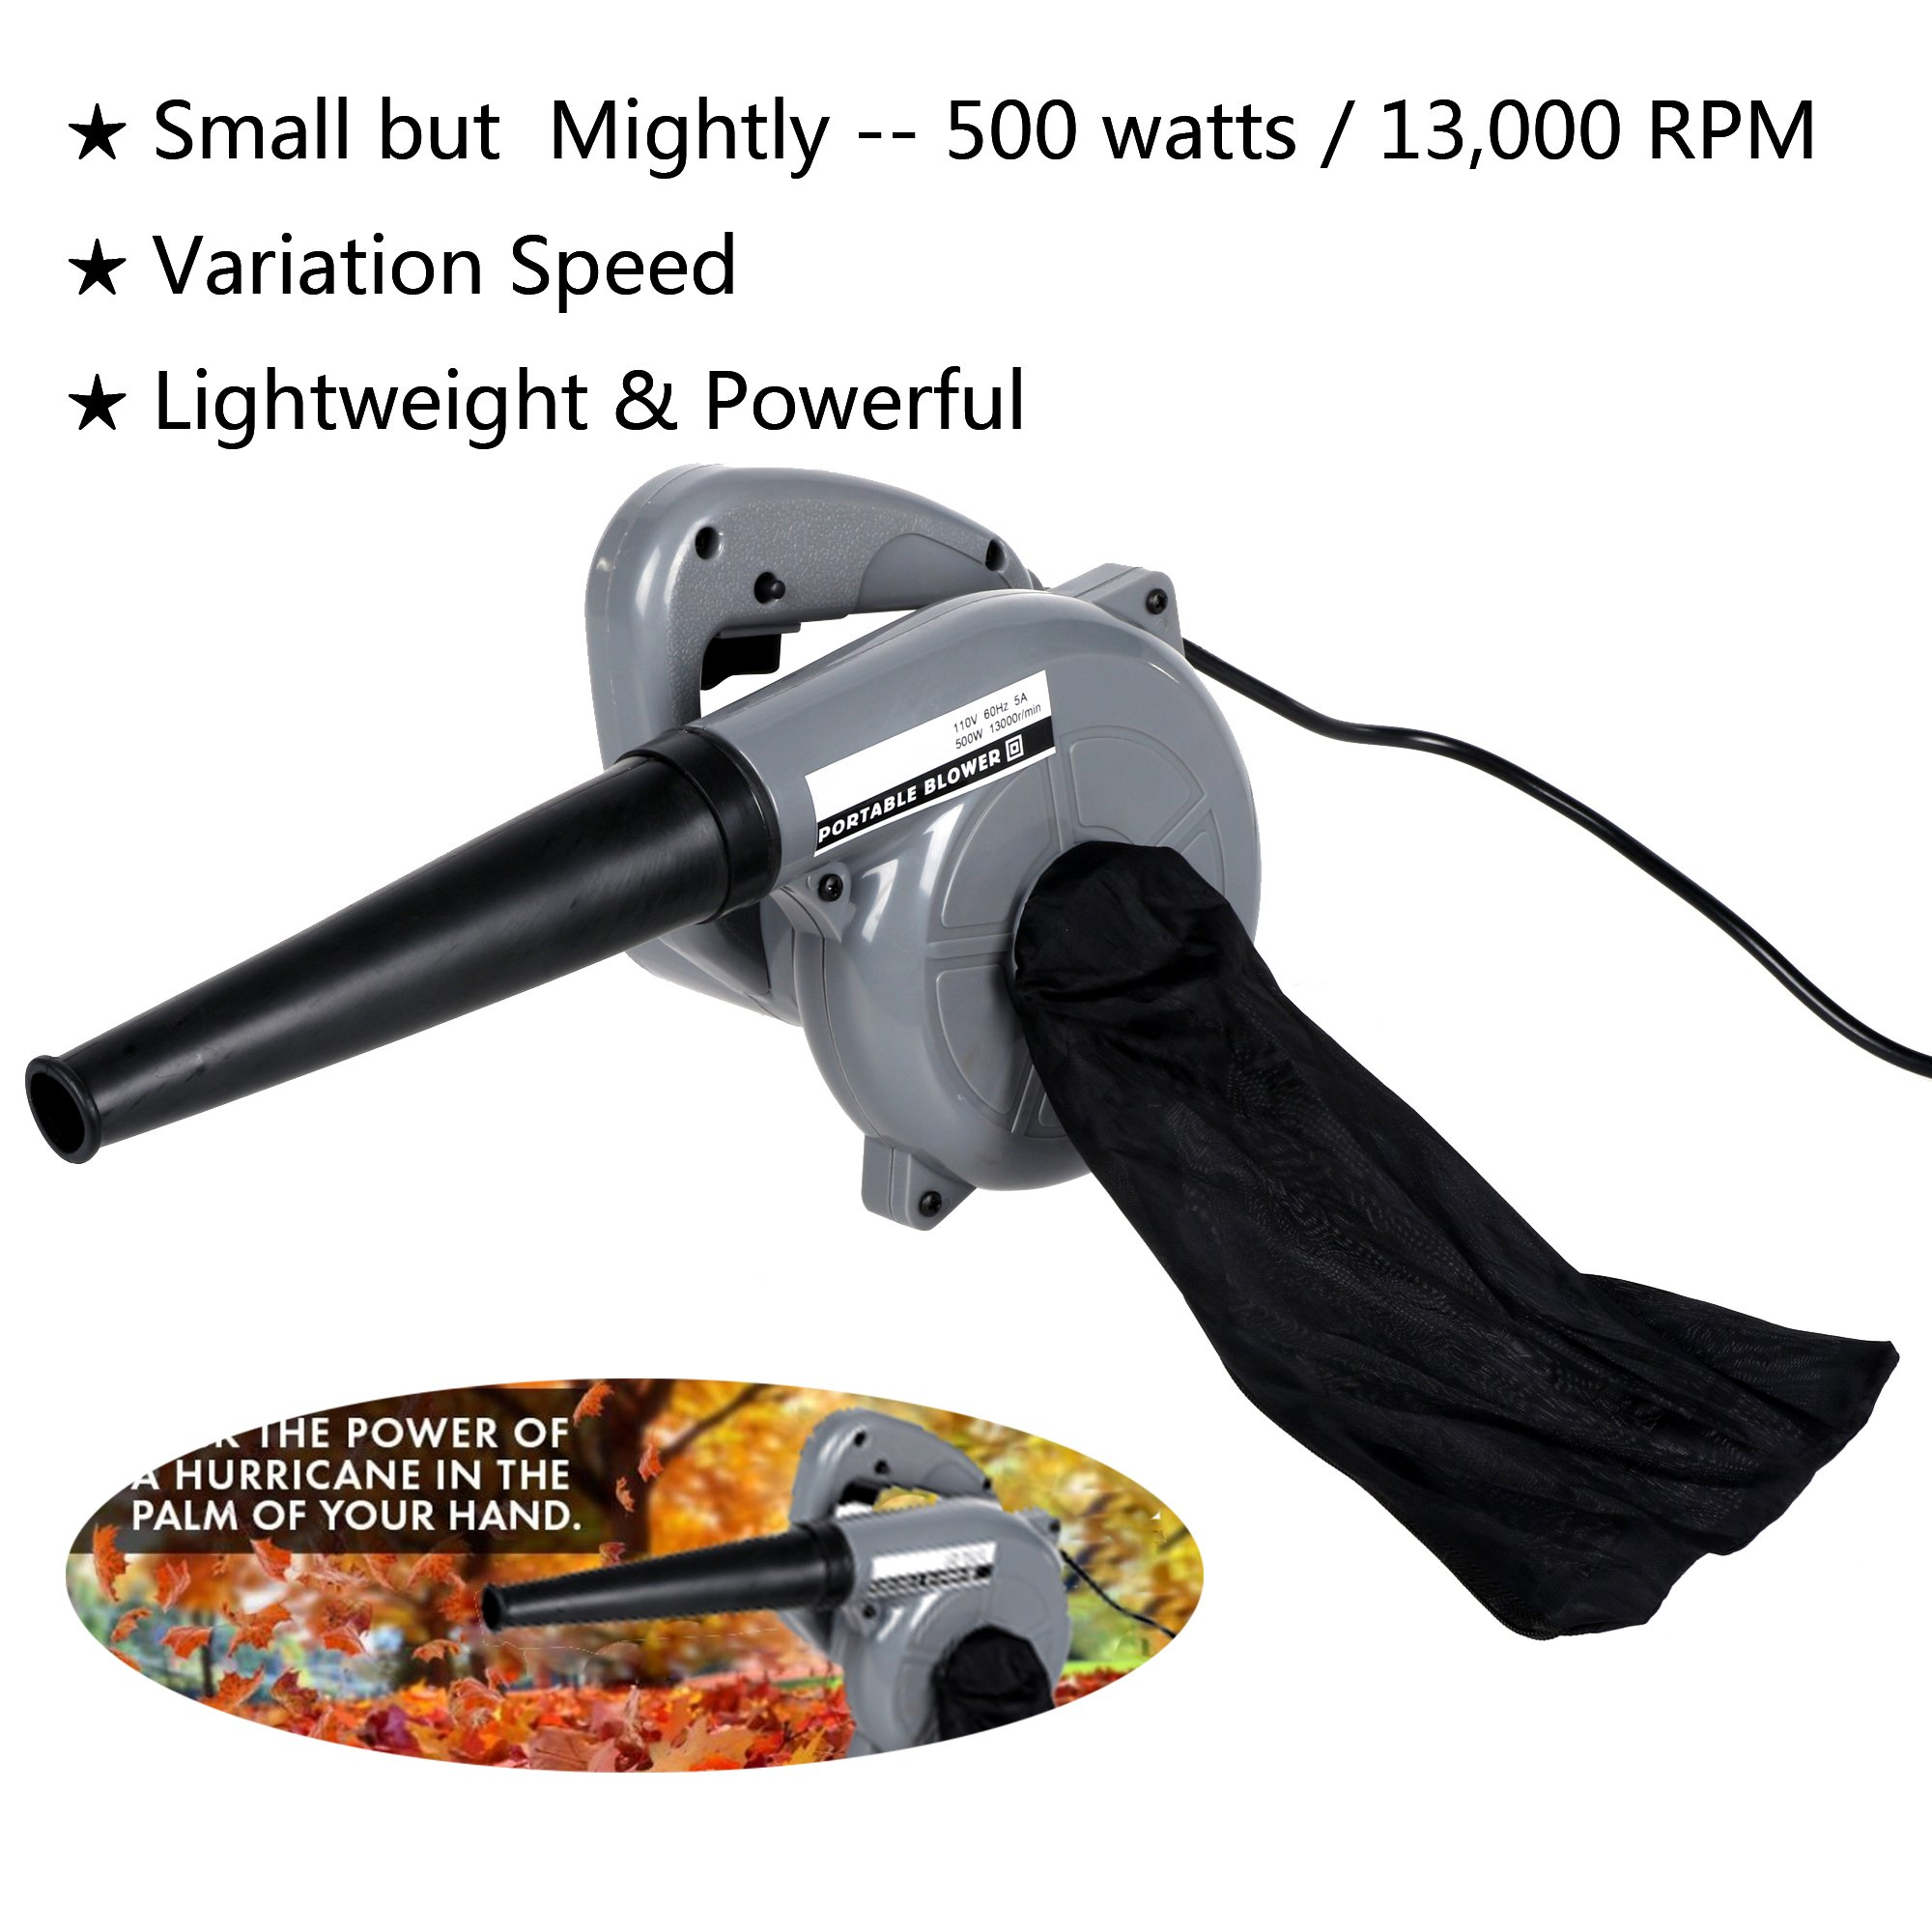 shaofu Electric Leaf Blower, Mighty Leaf Blower Blow Dust Cleaning Computer Vacuum Cleaner With Vacuum Bag (Grey-500W)